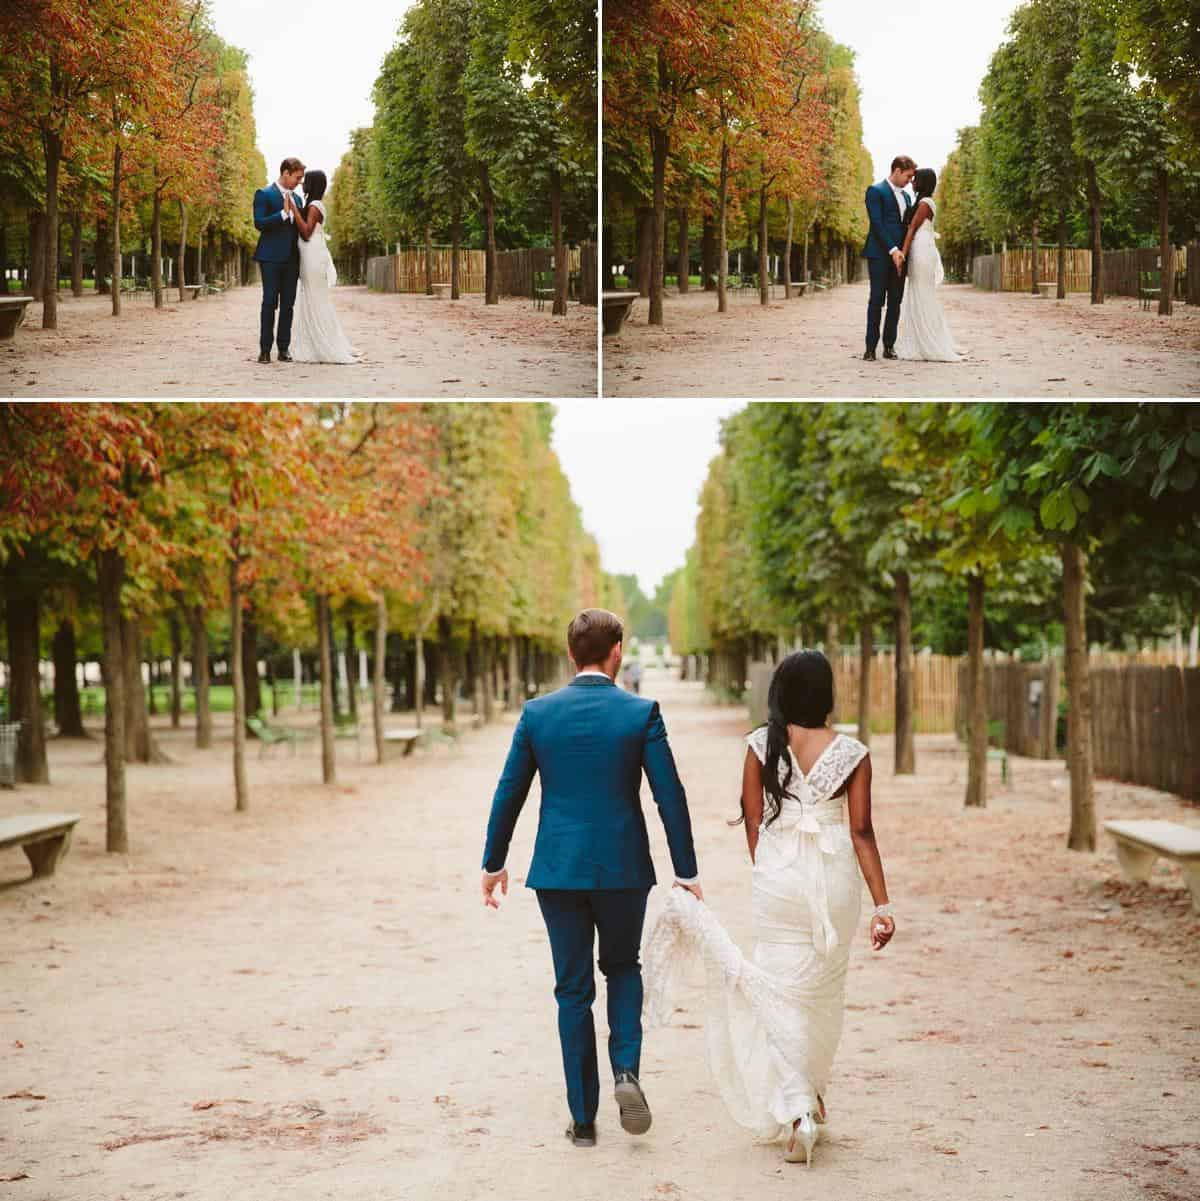 The Tulleries Paris Destination wedding photographer www.benandhopeweddings.com.au